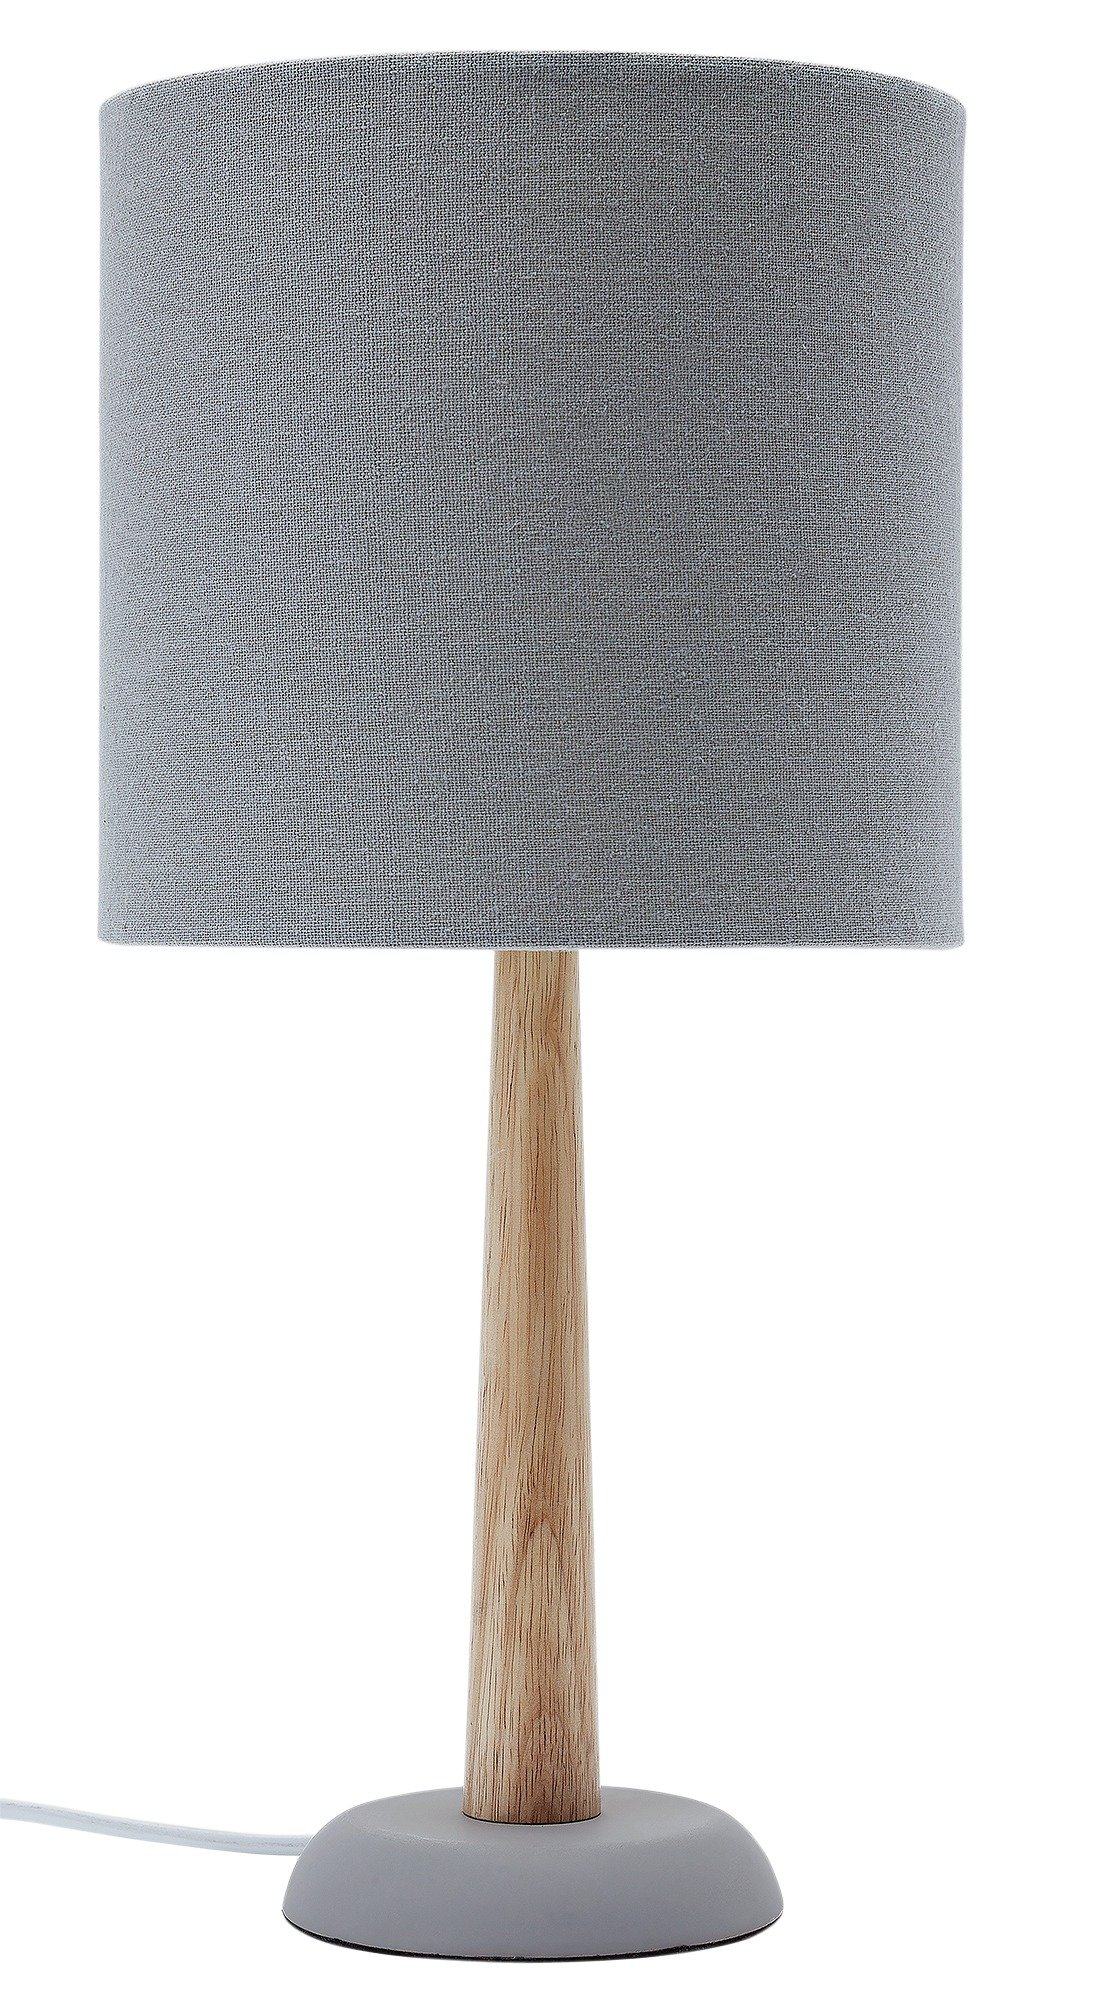 collection oslo wooden stem floor lamp grey. Black Bedroom Furniture Sets. Home Design Ideas